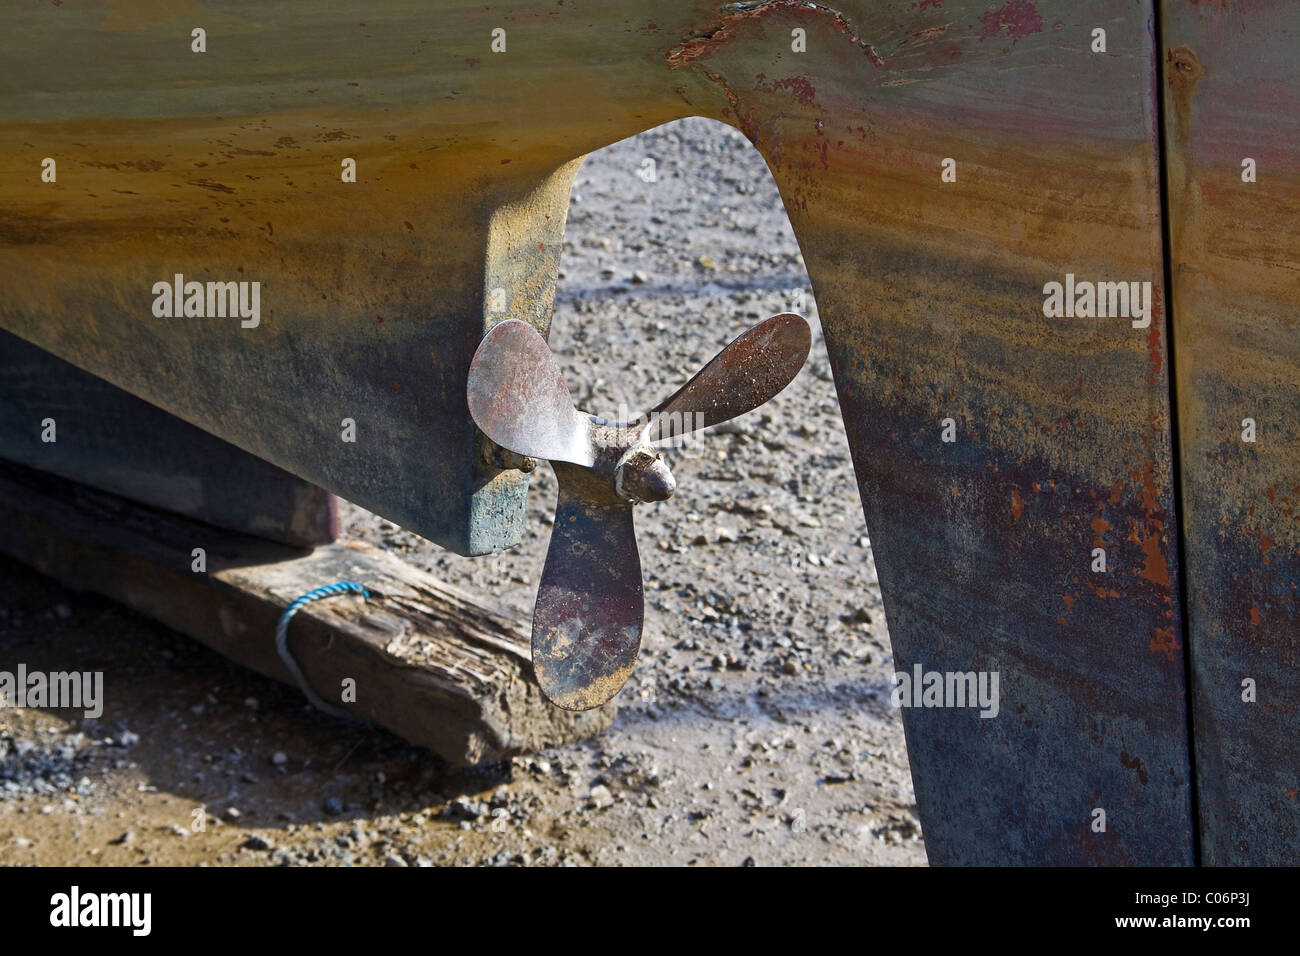 Yacht keel and propeller - Stock Image